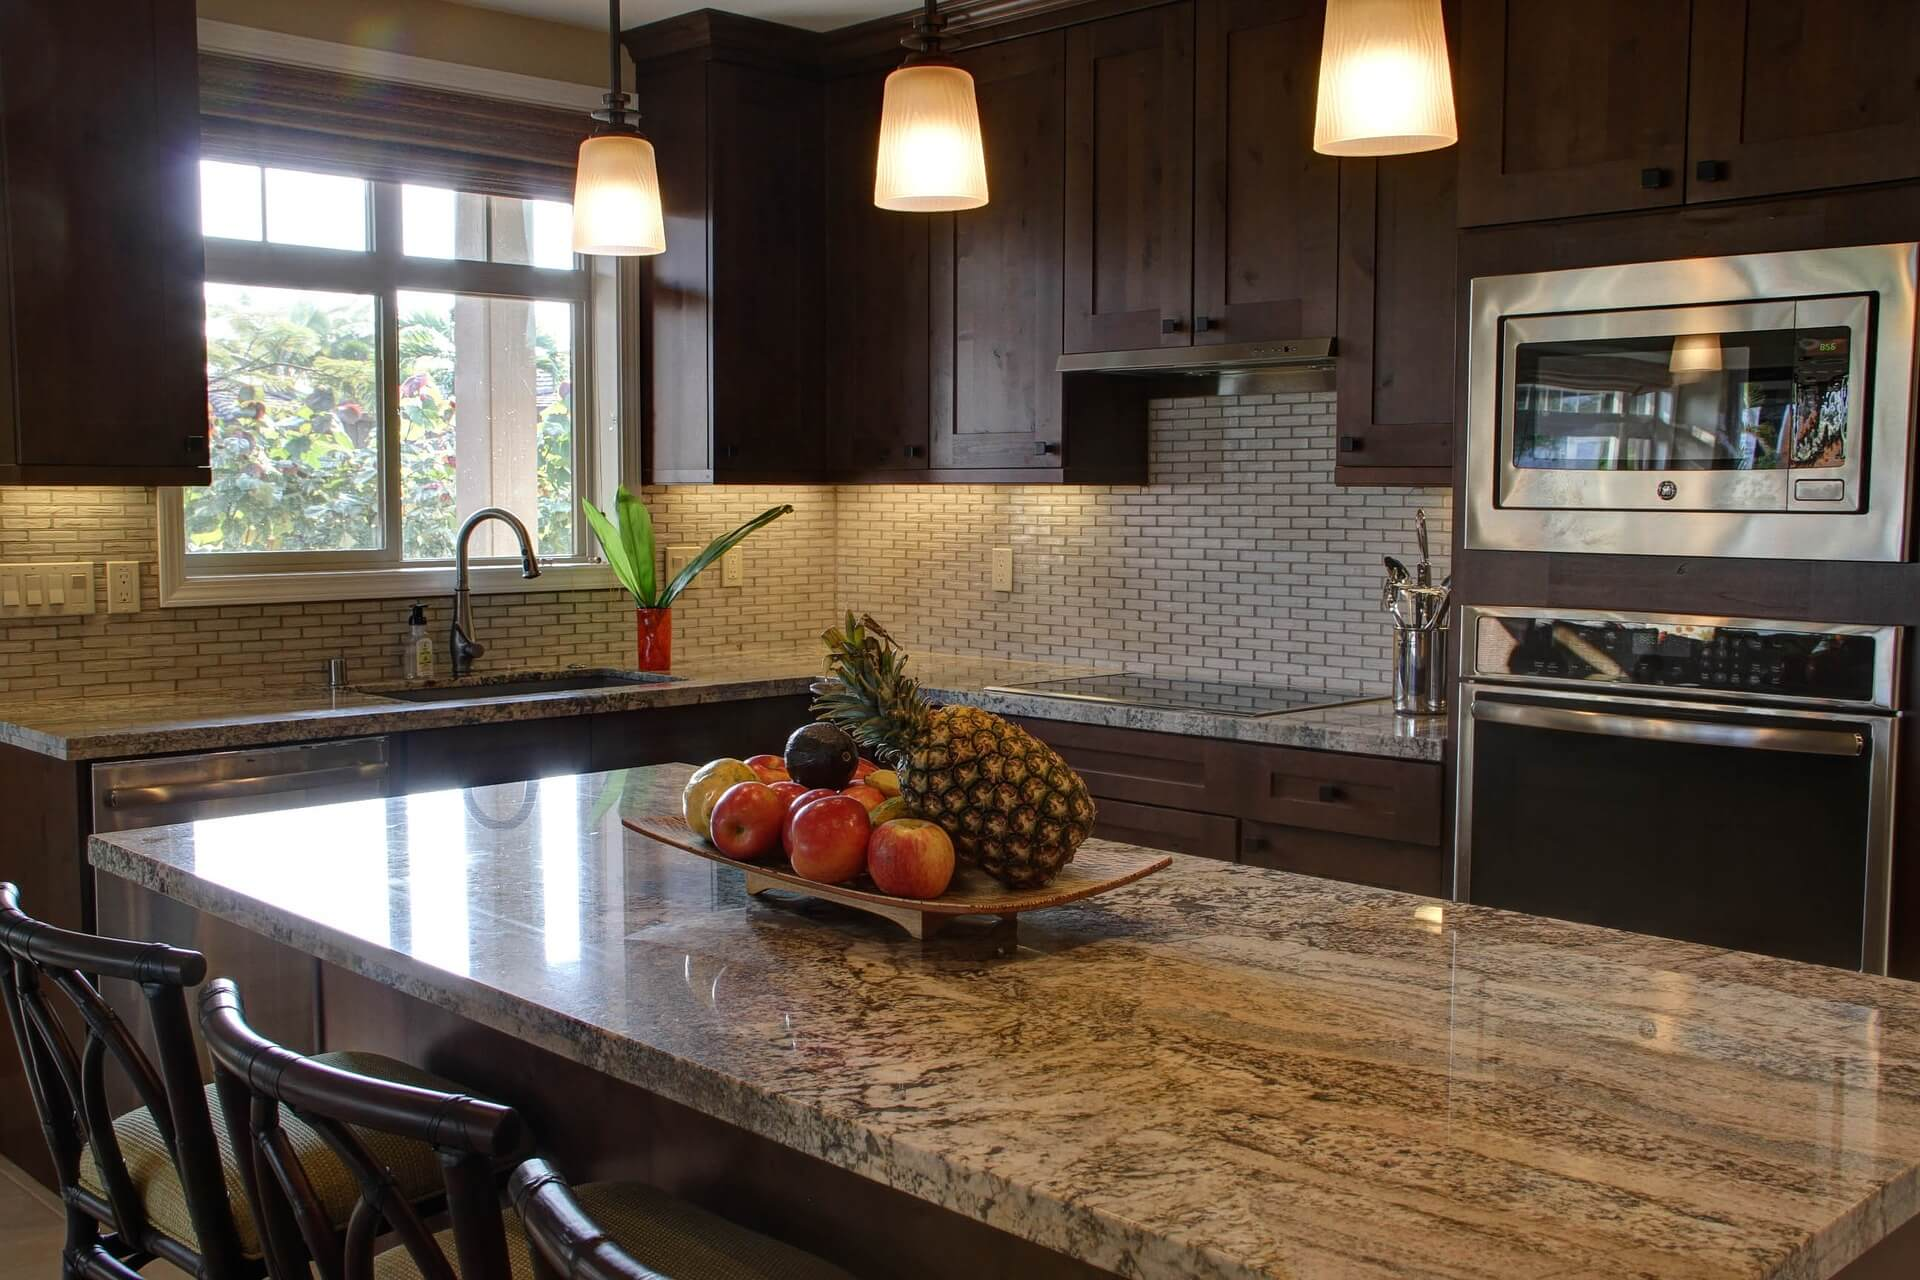 kitchen countertop from Mchales in Pennsylvania